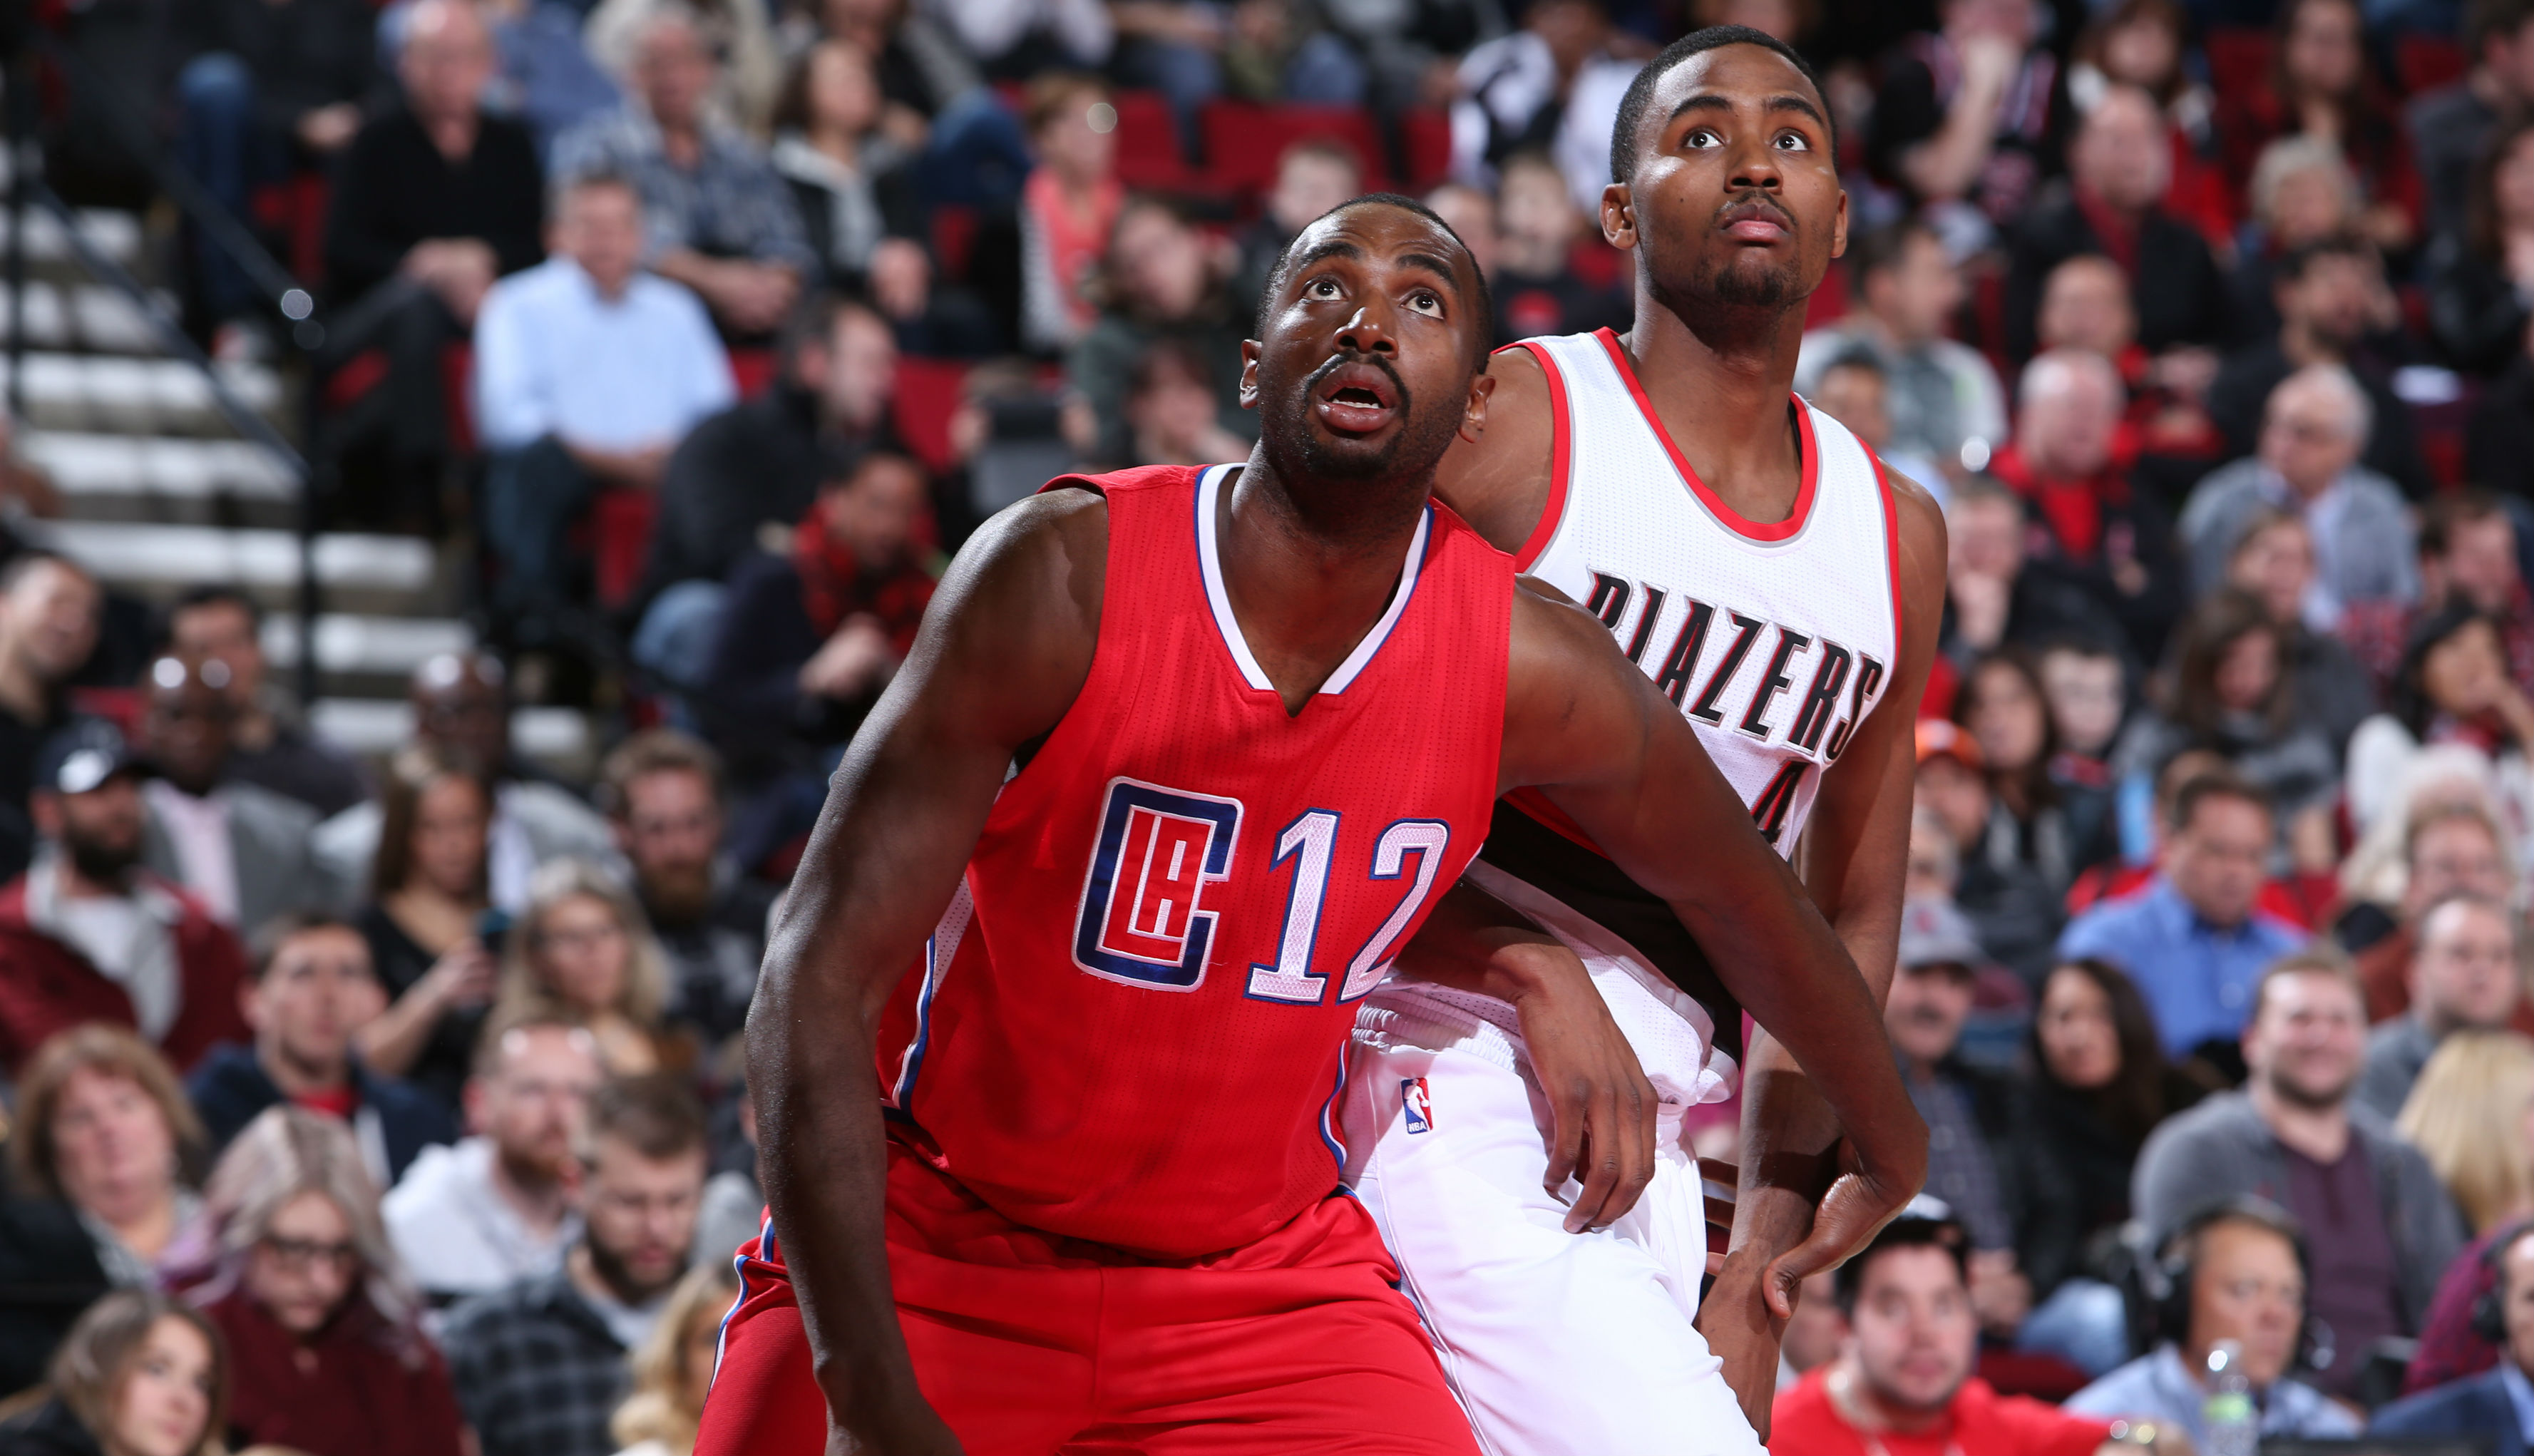 Rockets to sign Mbah a Moute